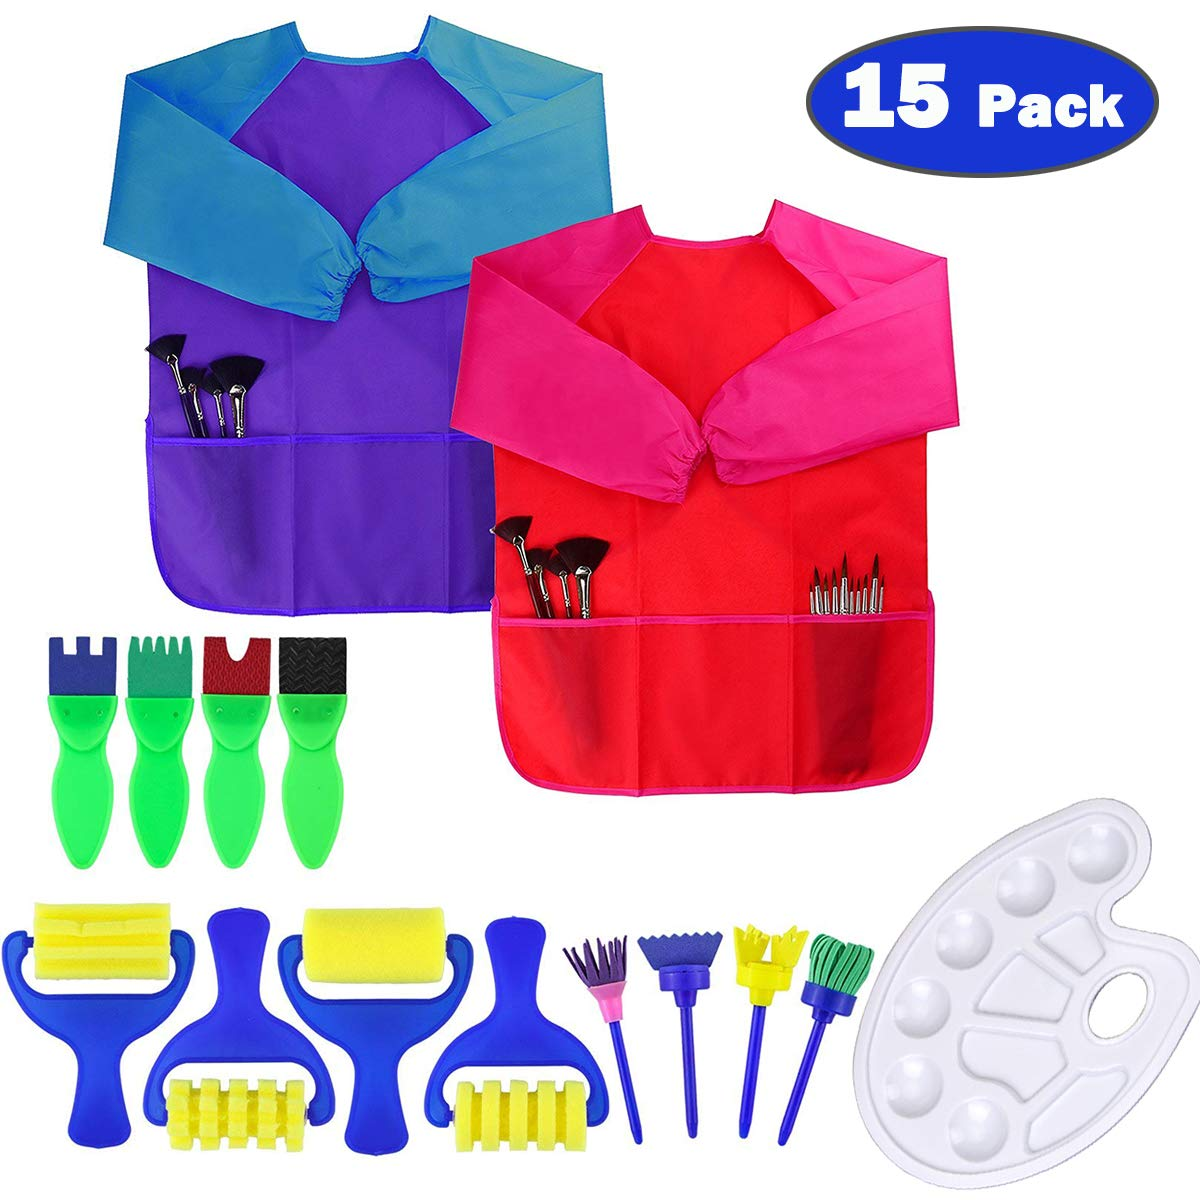 Dreampark Art Smock for Kids, Children Art Aprons - Paint Brushes - Color Palette for Toddler Painting Art and Craft Supplies (15 Pack) Waterproof Long Sleeve 3 Roomy Pockets, Ages 2-6